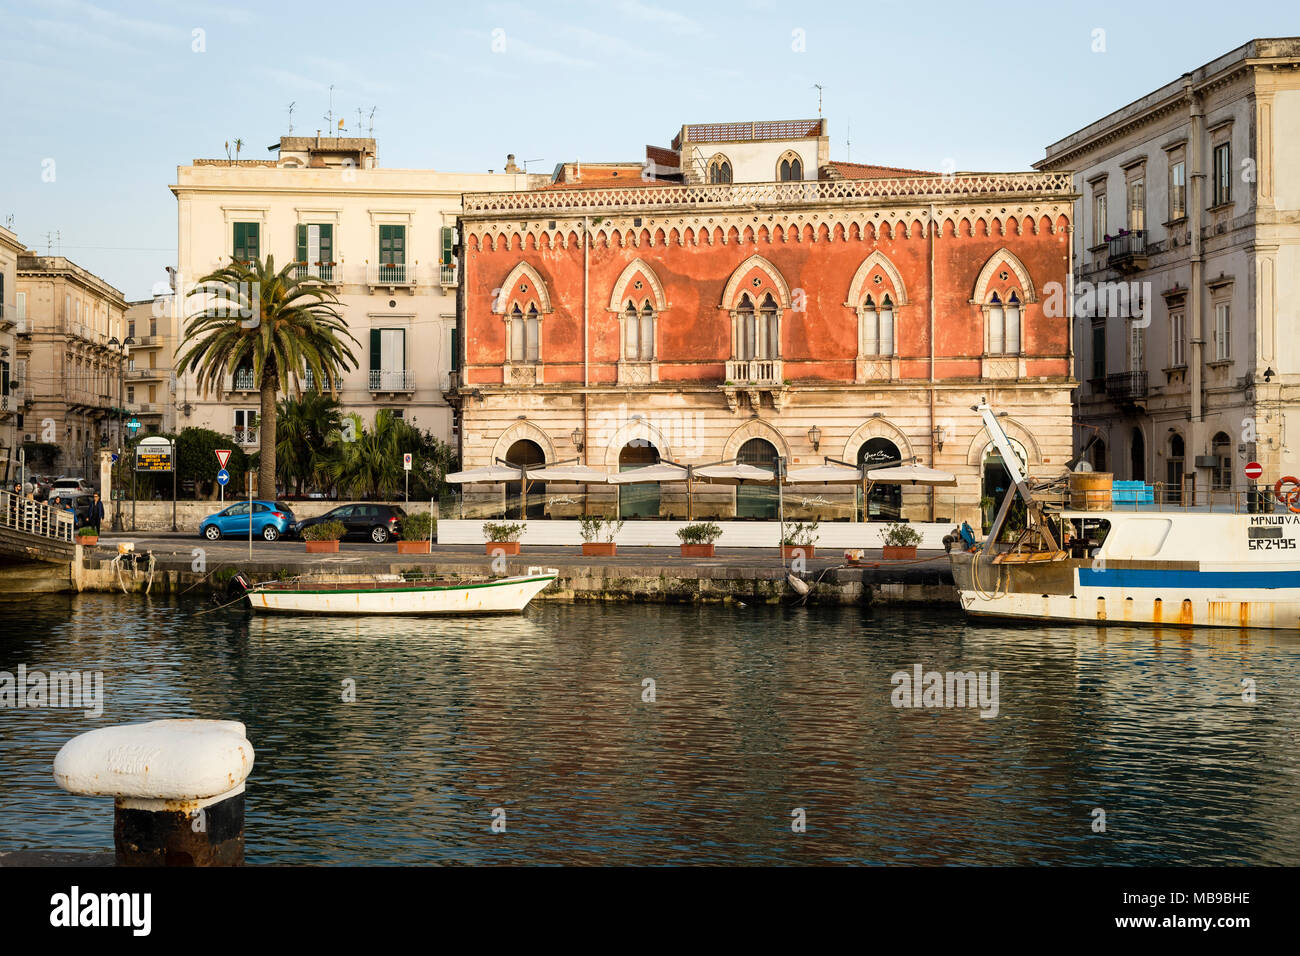 Palazzo Lucchetti and Darsena channel in Ortgia, Siracusa, Sicily, Italy. - Stock Image